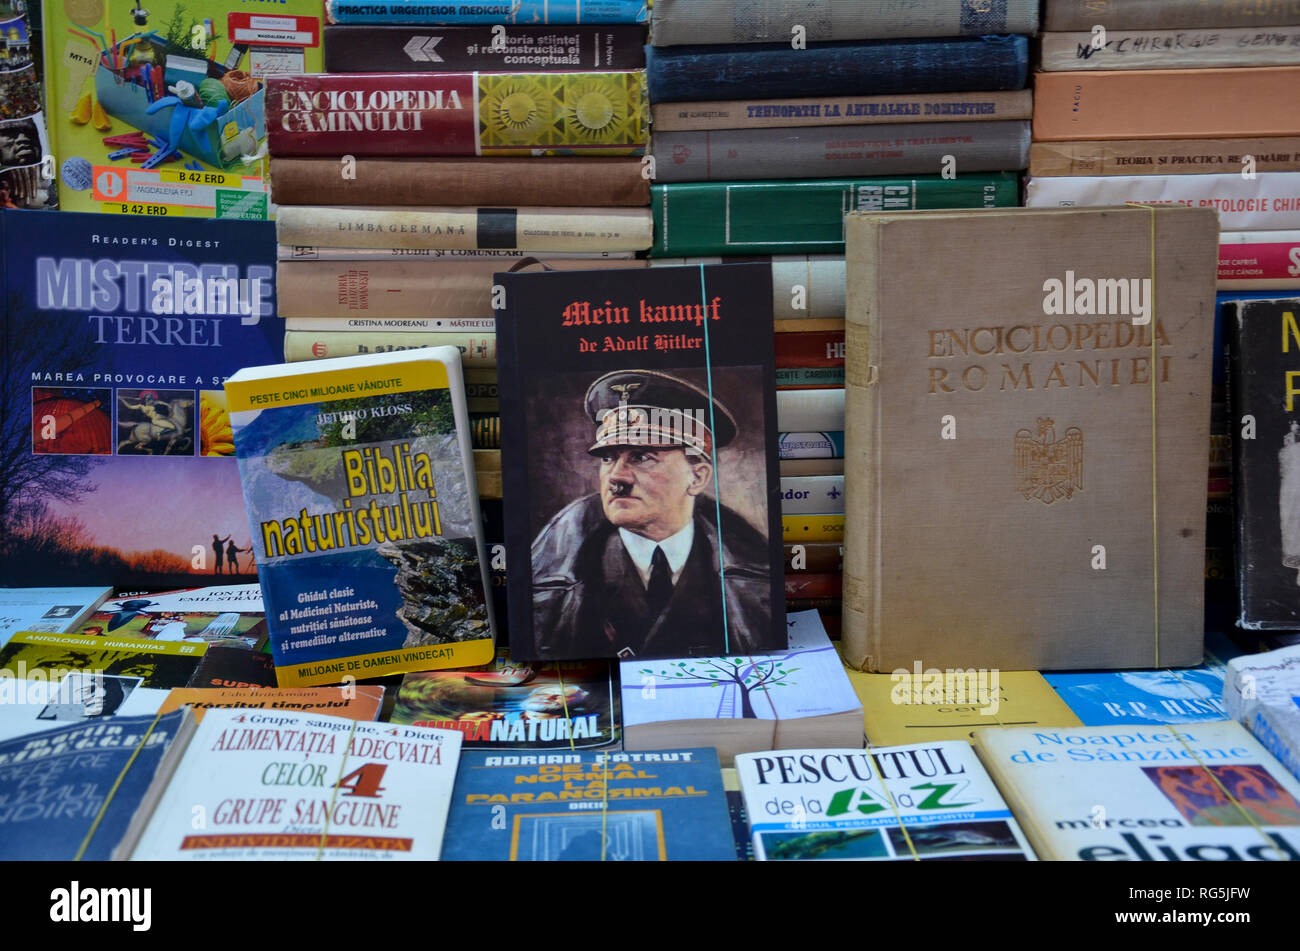 Mein Kampf by Adolf Hitler on sale at a book stall in central Bucharest, Romania, November 2018 - Stock Image